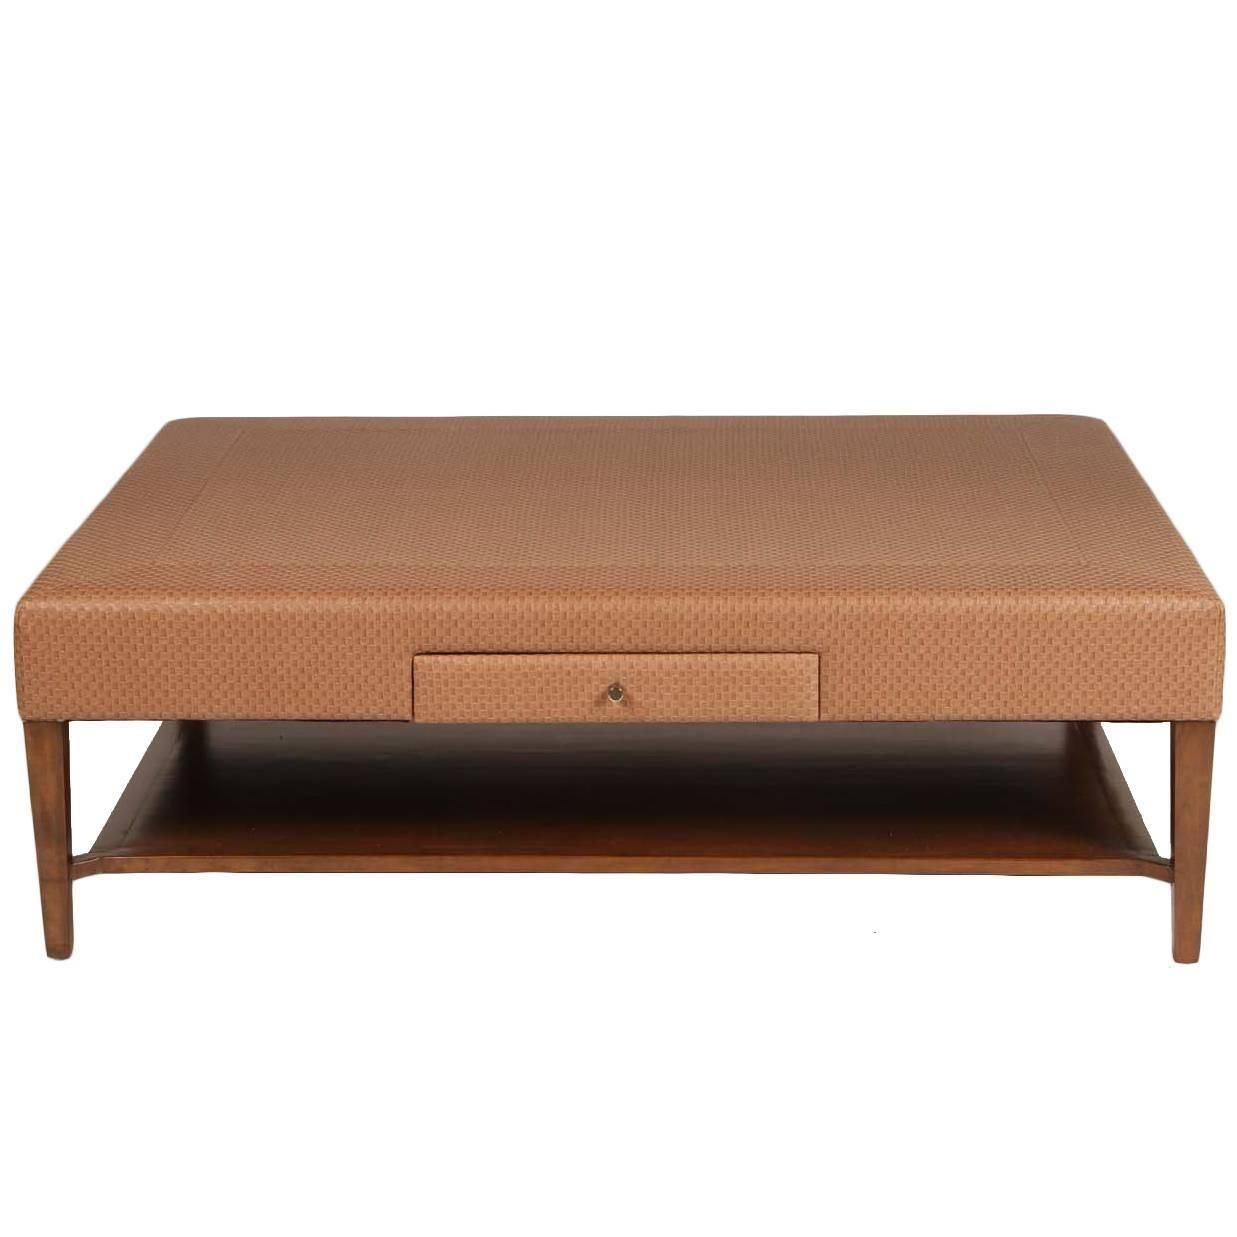 Scale Upholstered Coffee Table